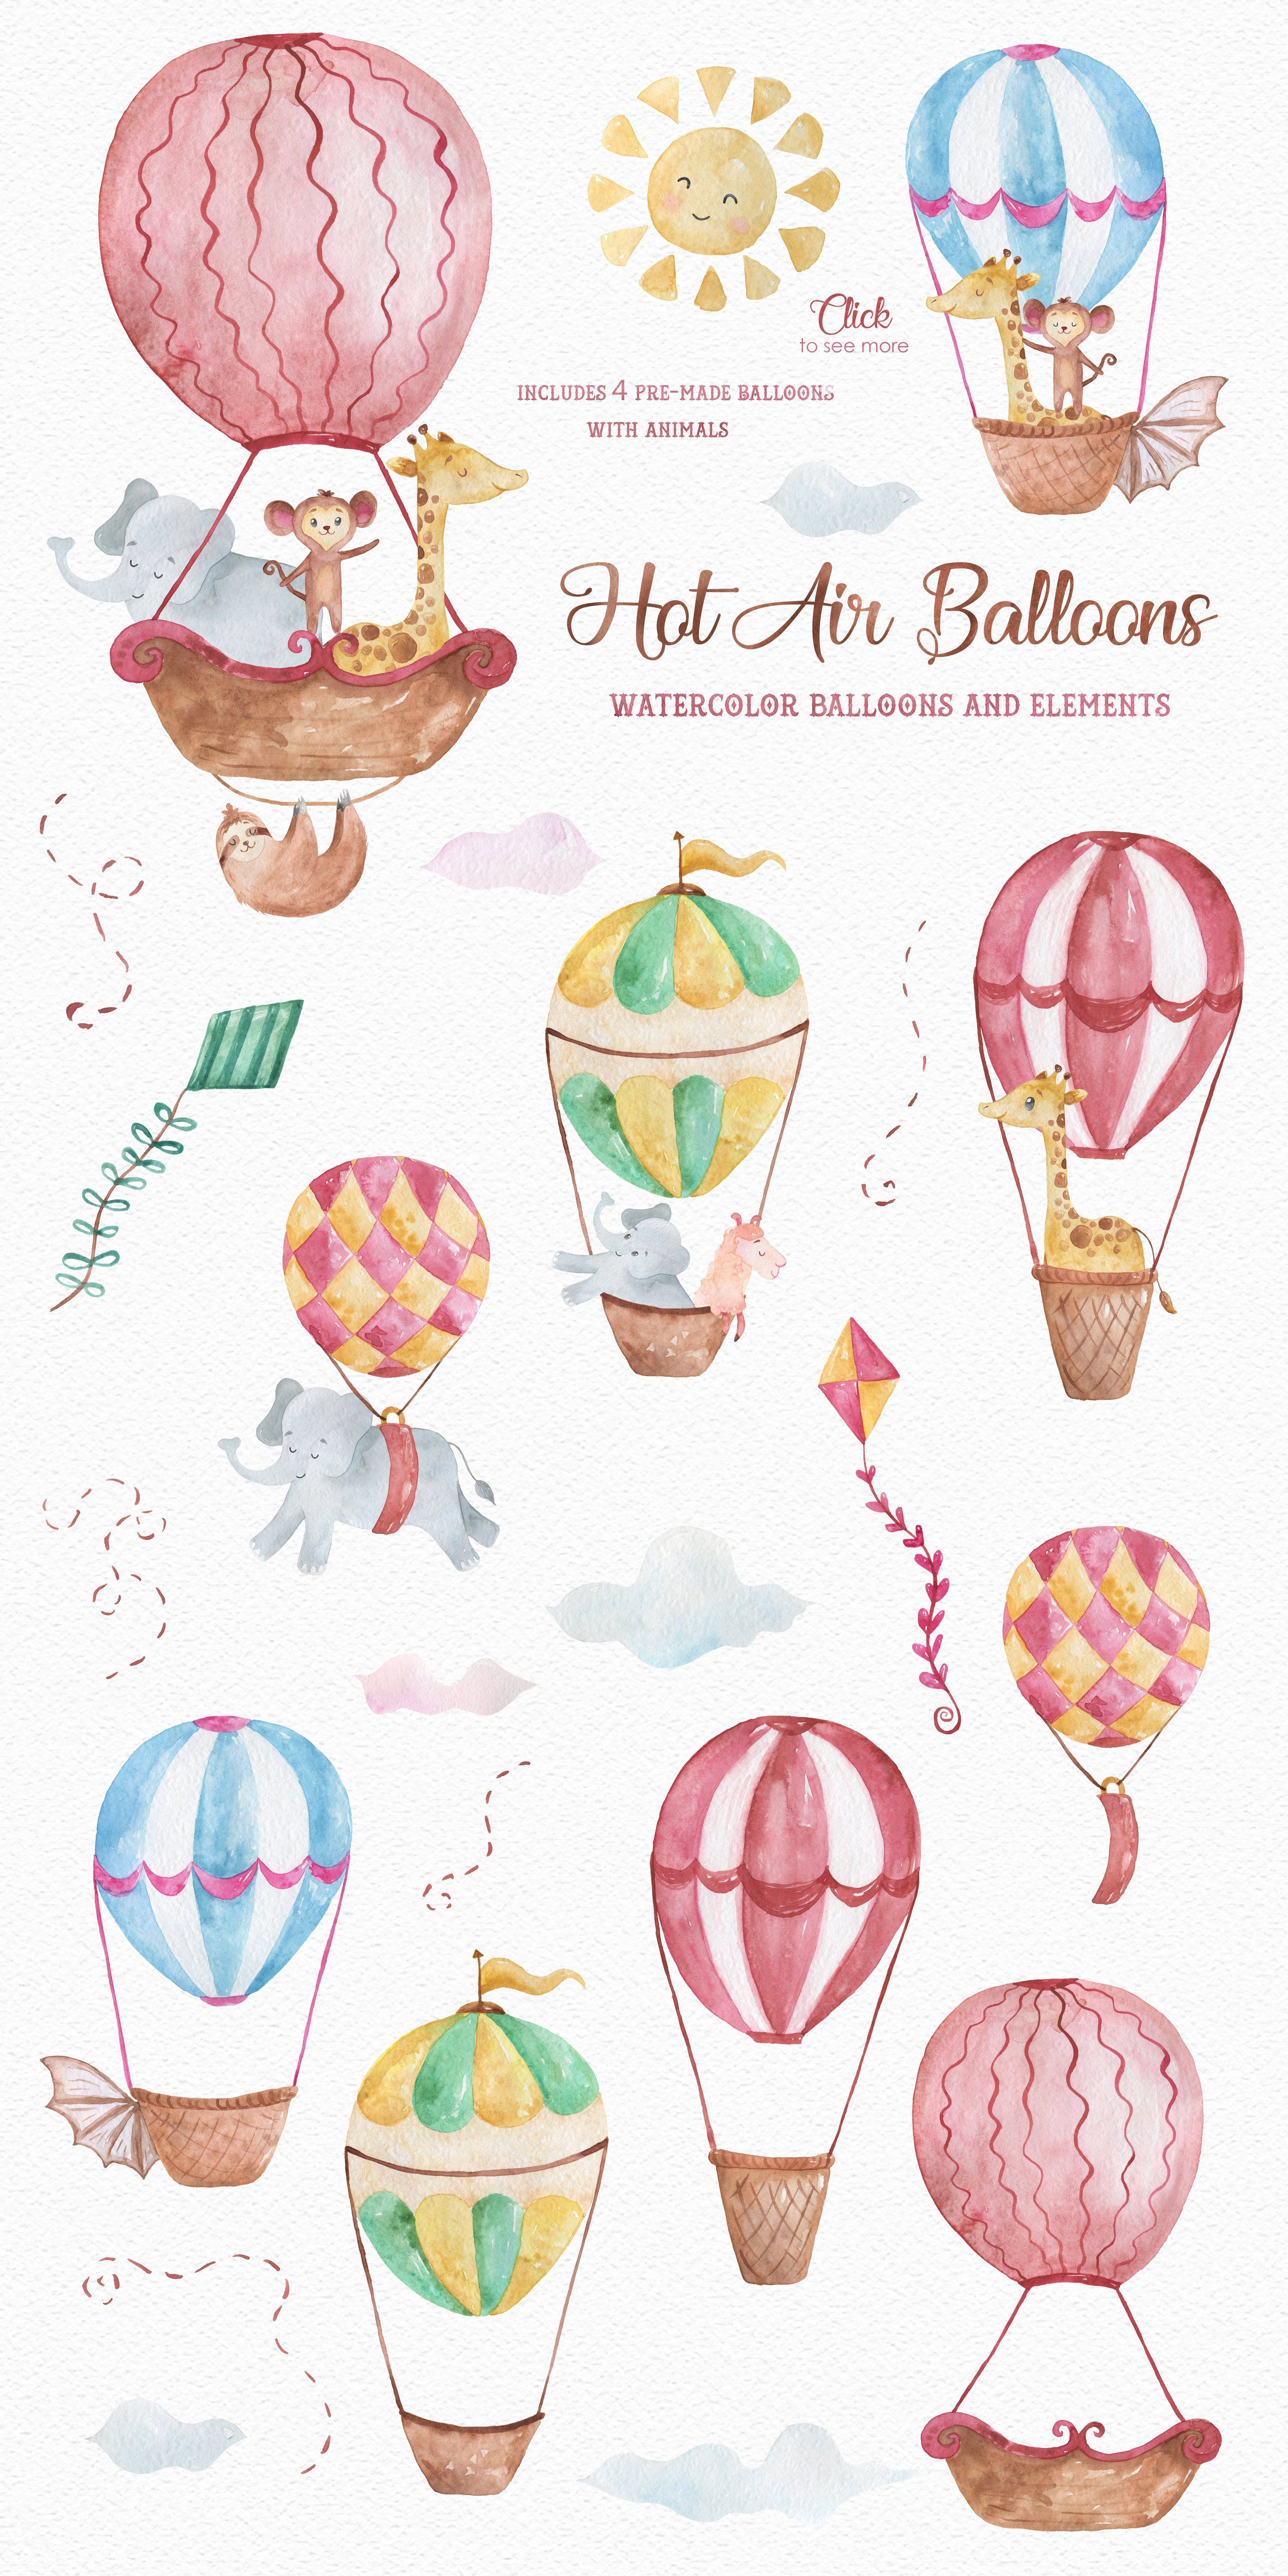 The Best Watercolour Hot Air Balloon Illustration Wallpapers